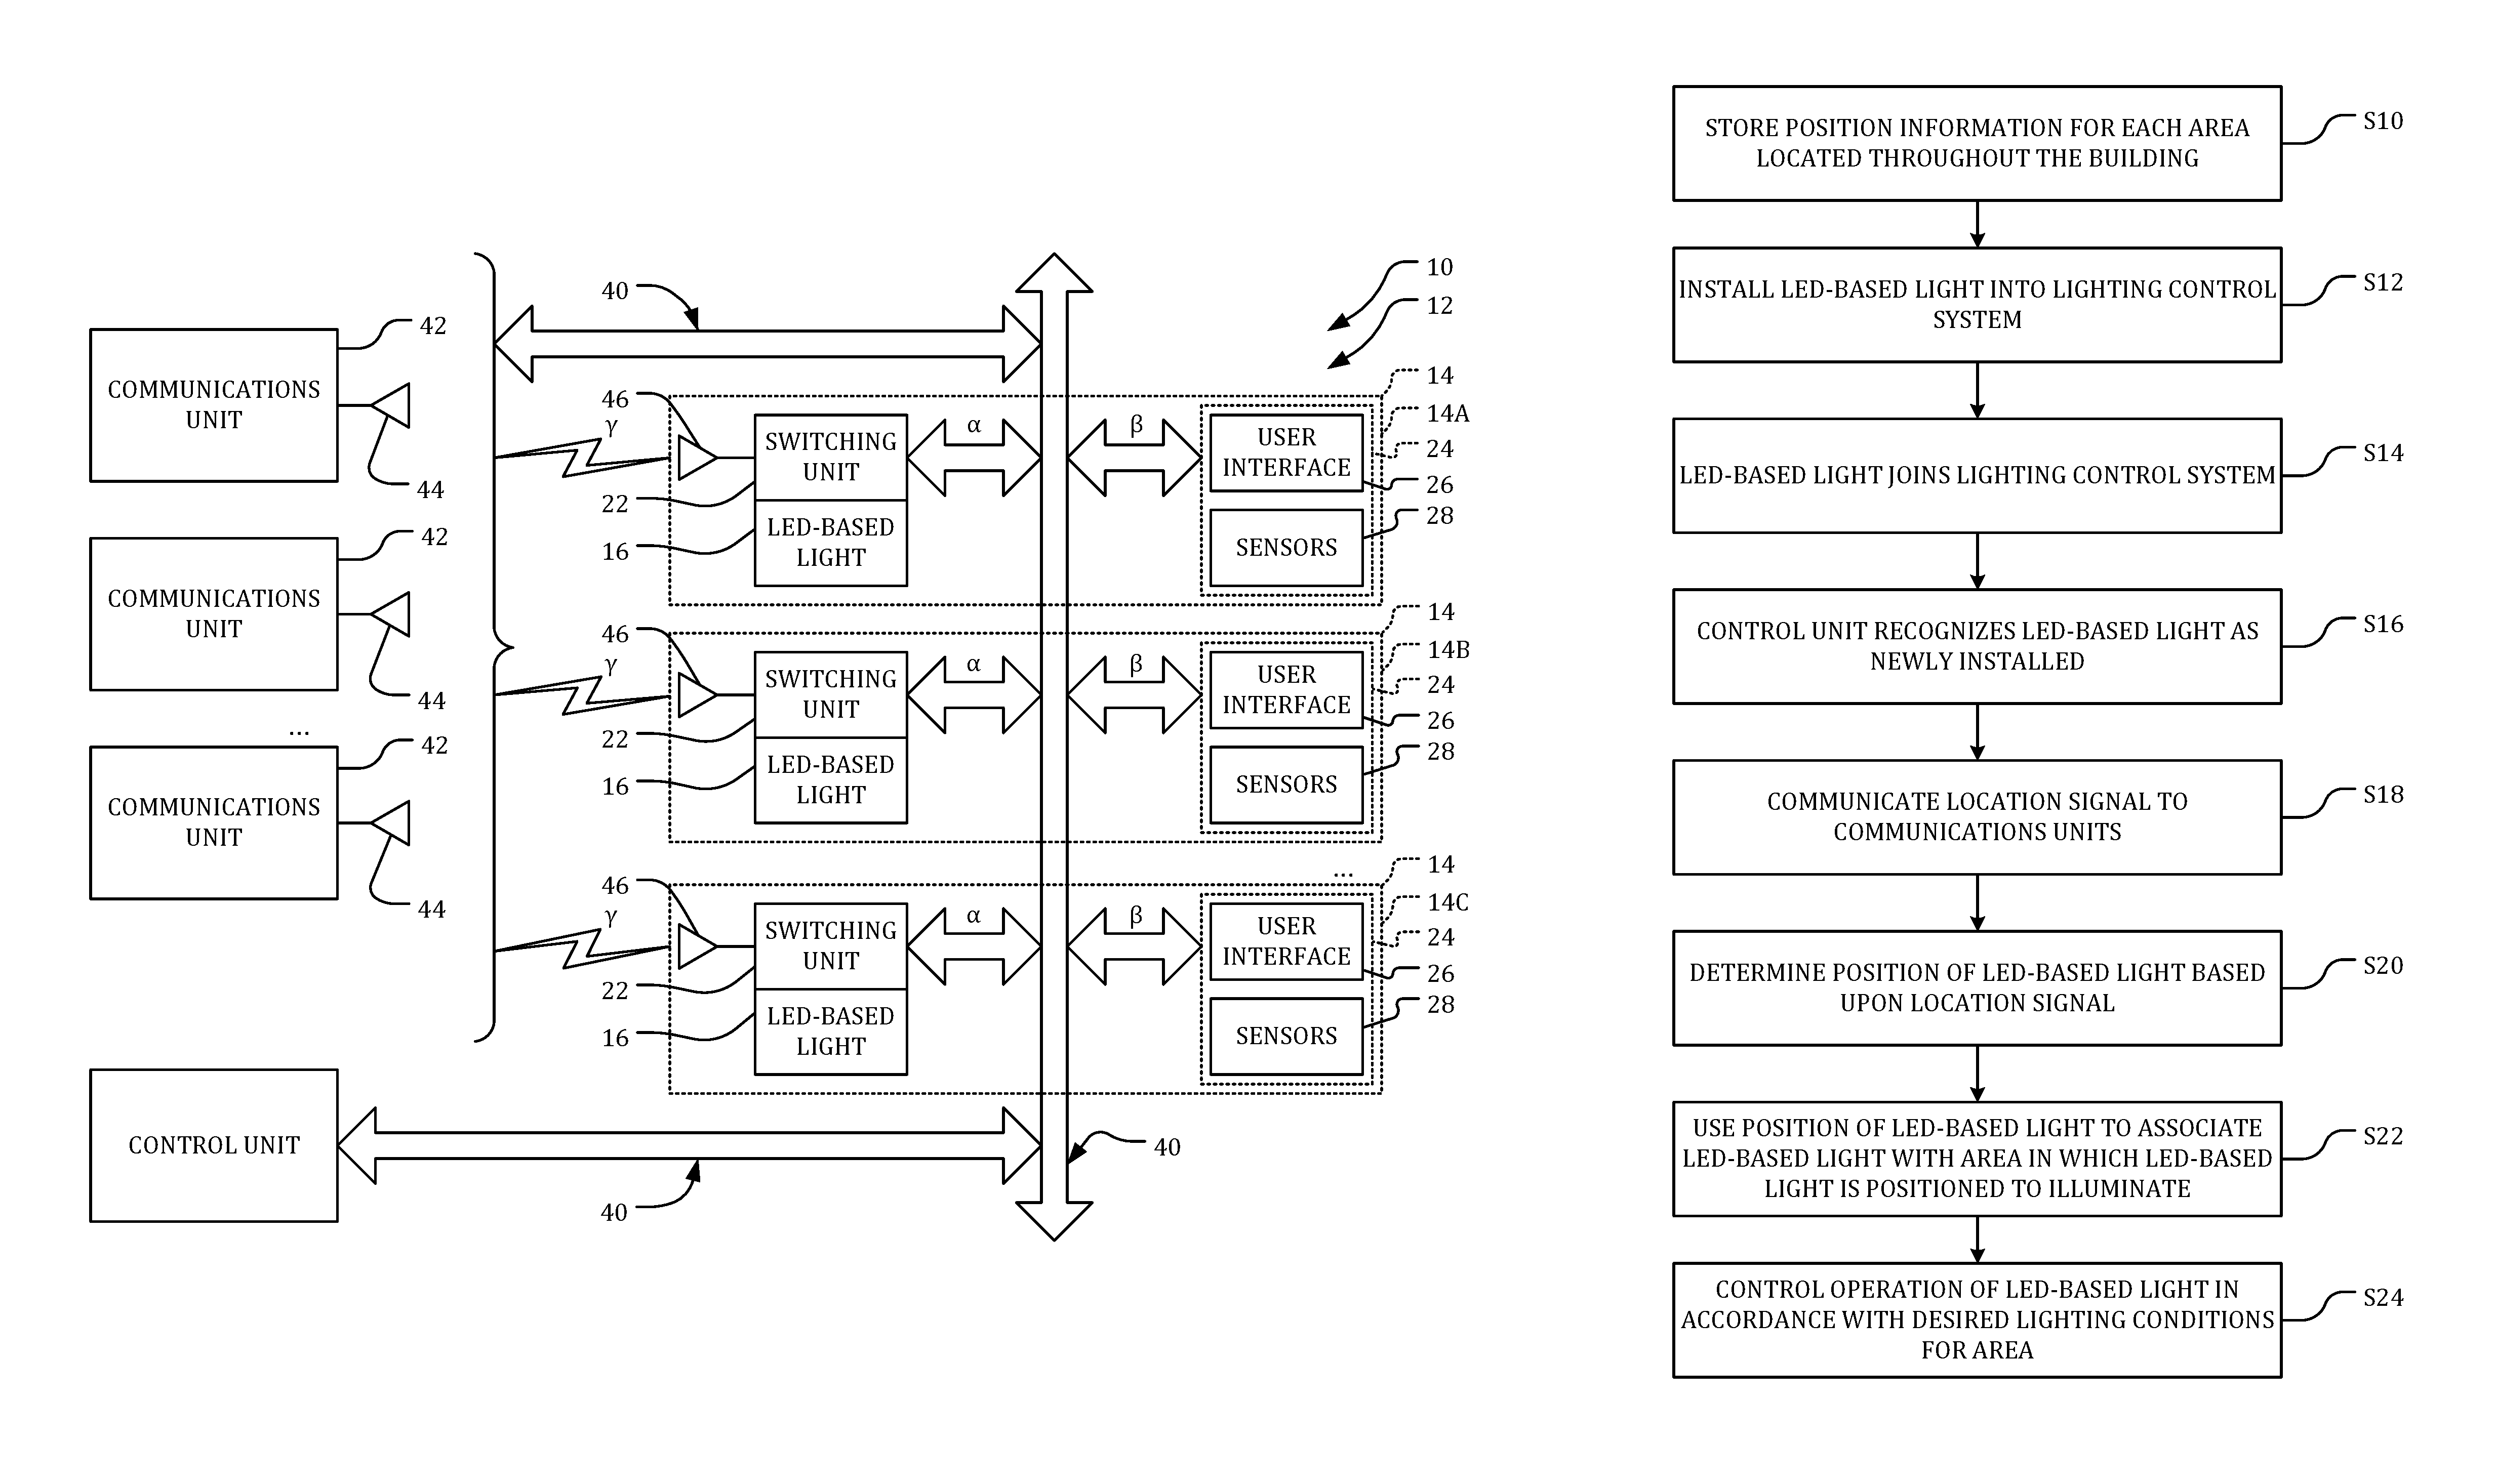 Patent Us 9807842 B2 Technique Of Paralleling Led Strings With Current Balancing Schematic First Claim